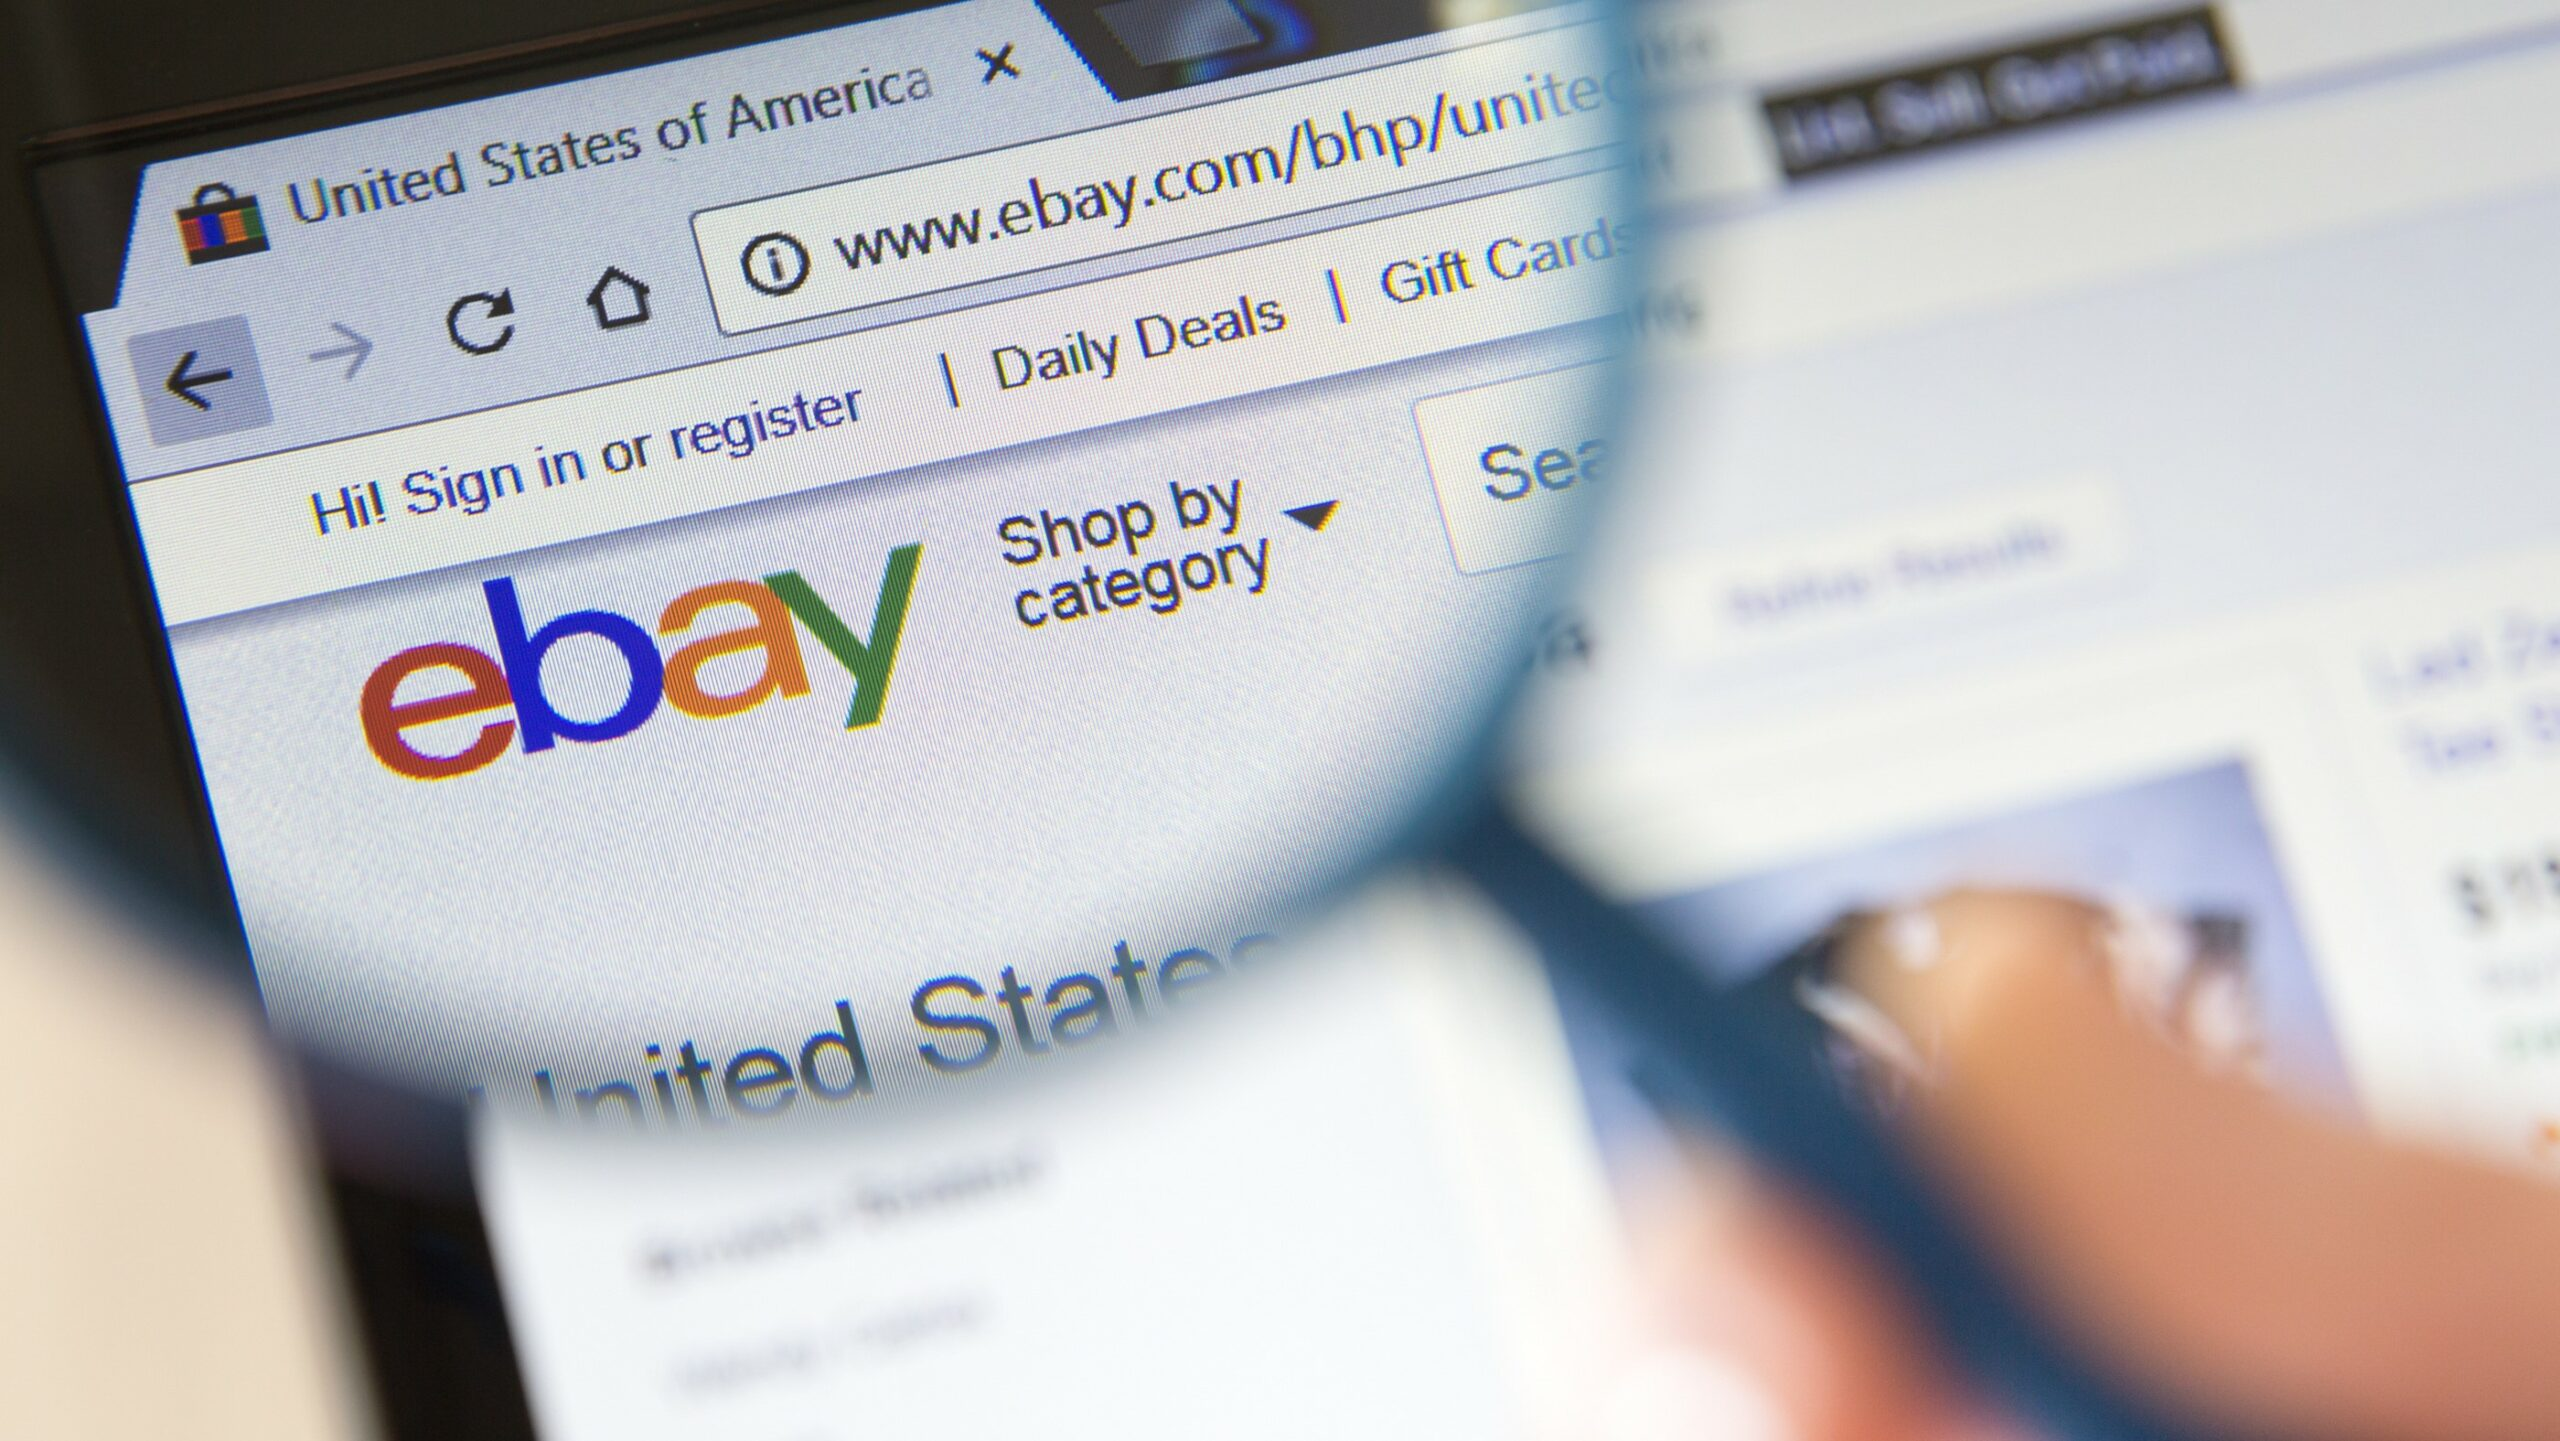 eBay launches small business loan service for its 300,000 SME sellers